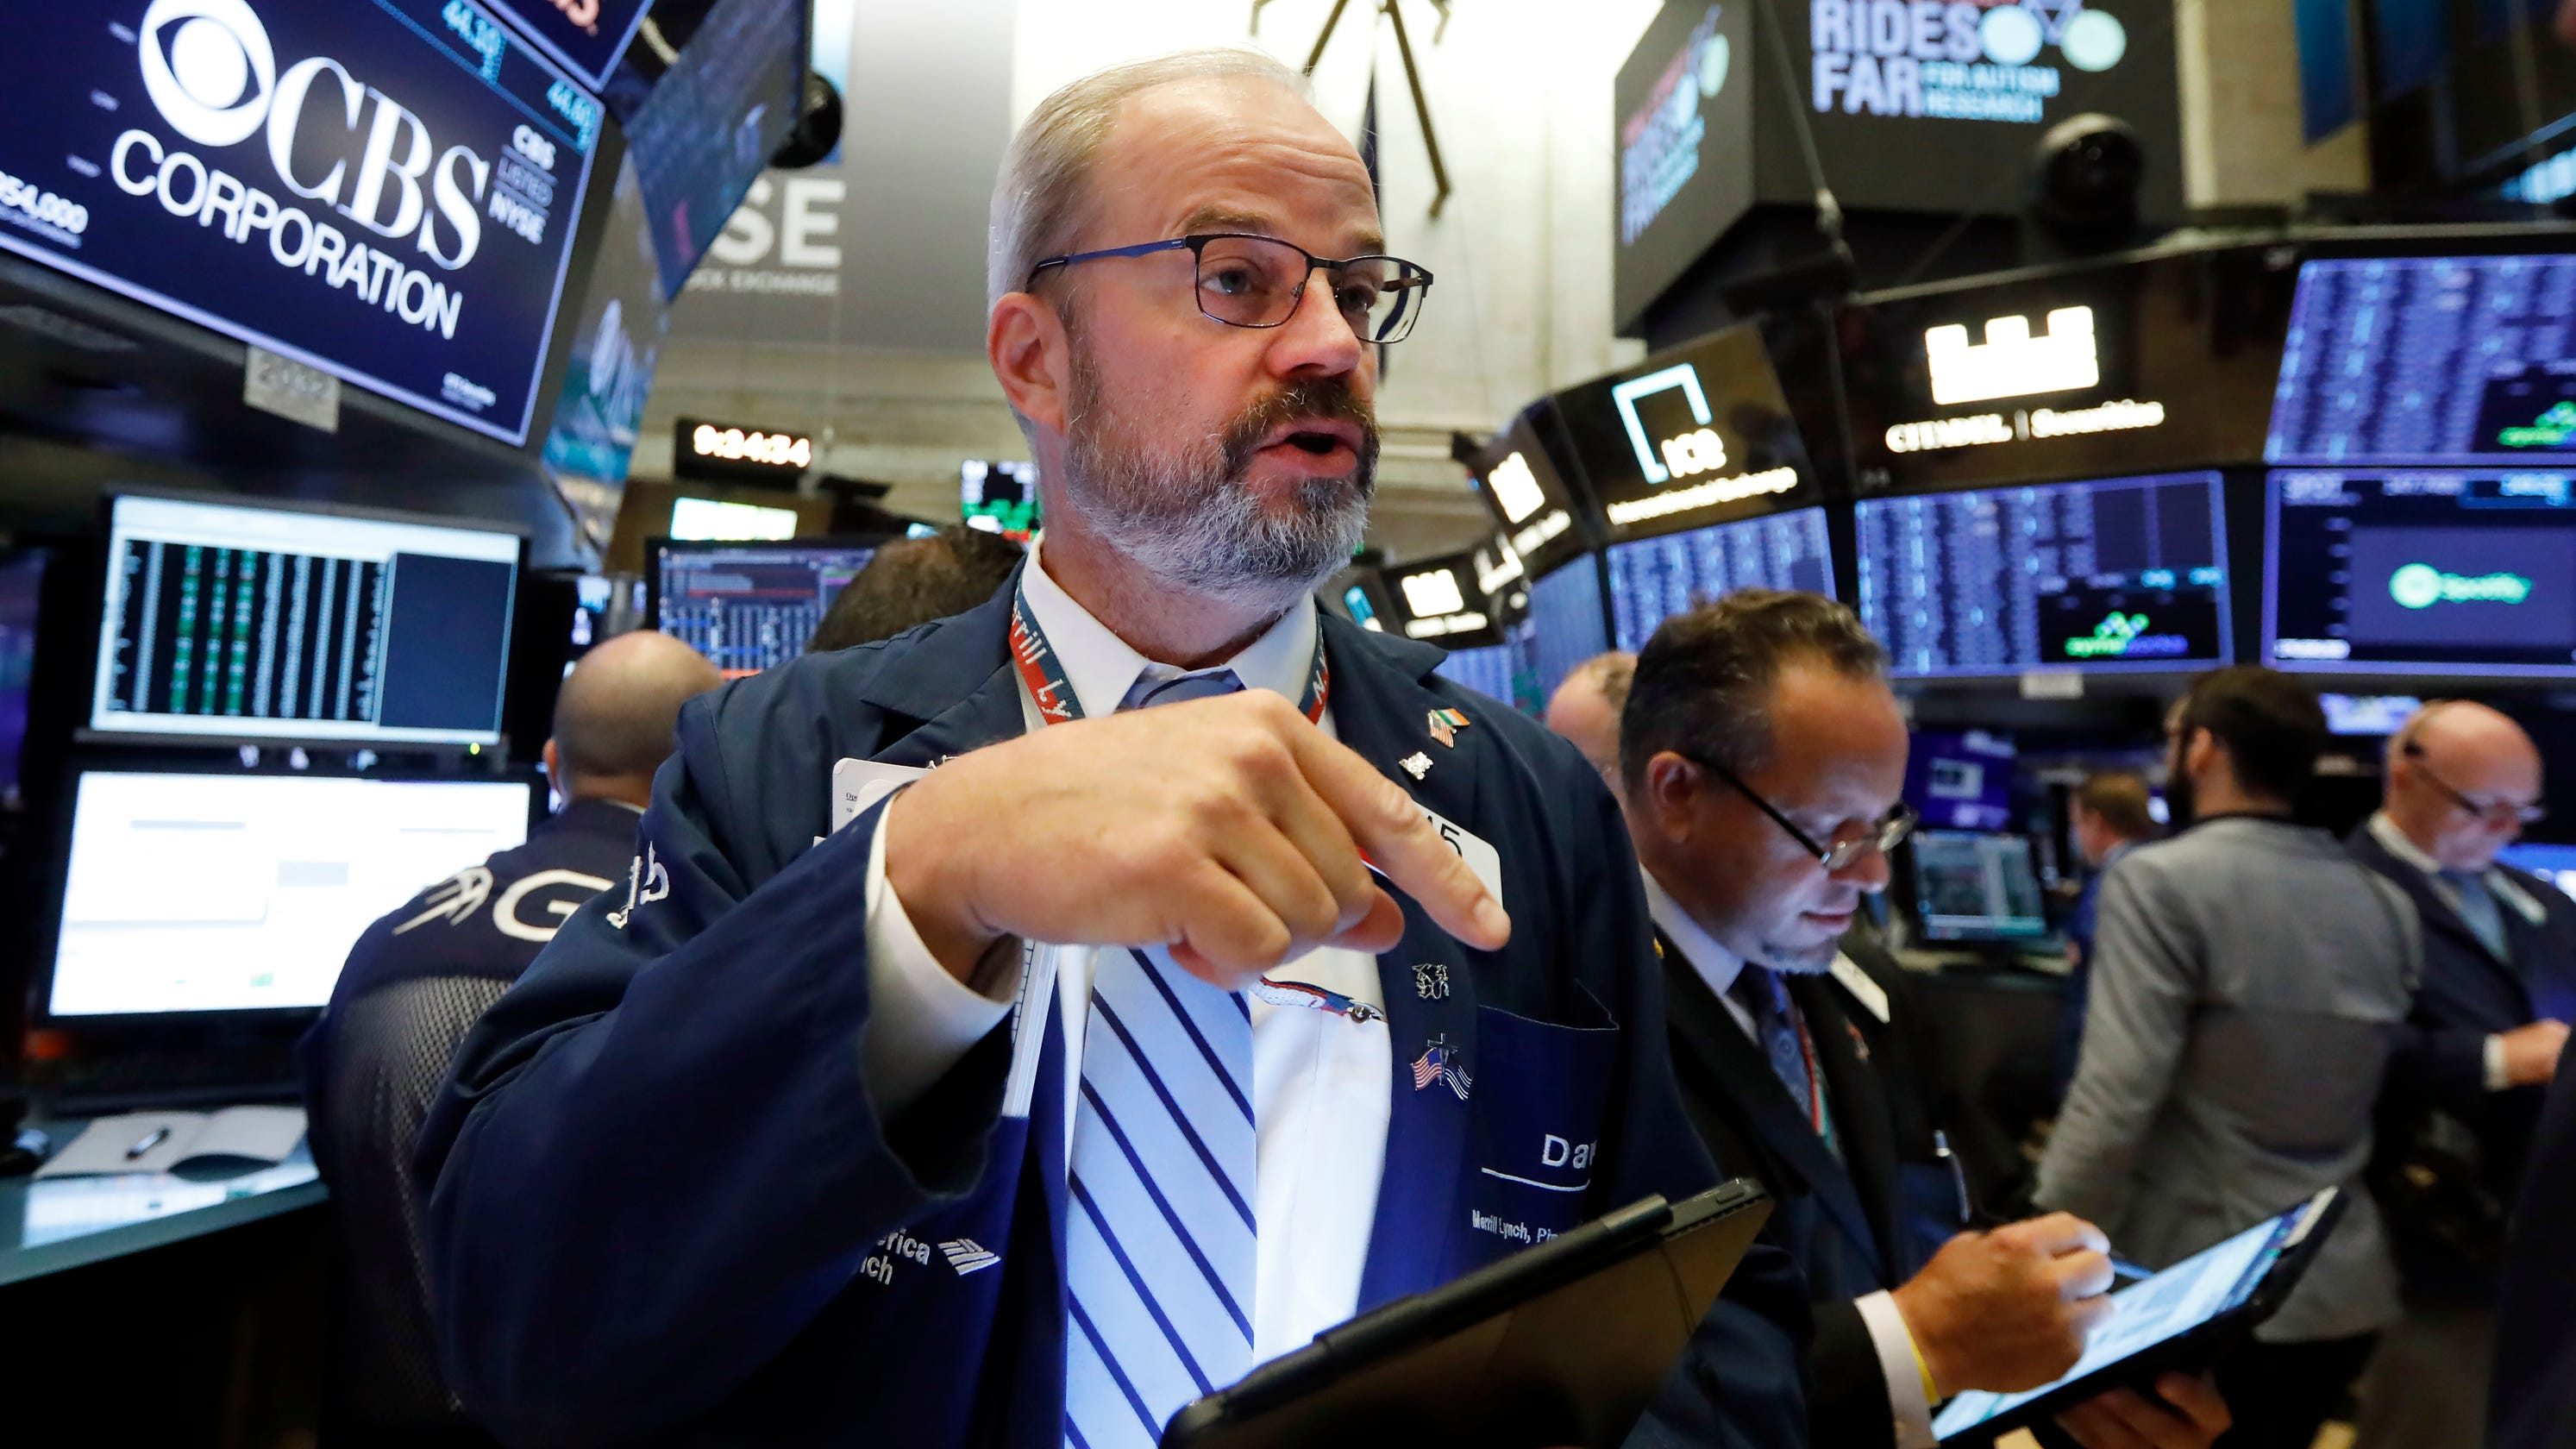 Tech stocks power solid gains on Wall Street: Dow, S&P 500 jump up